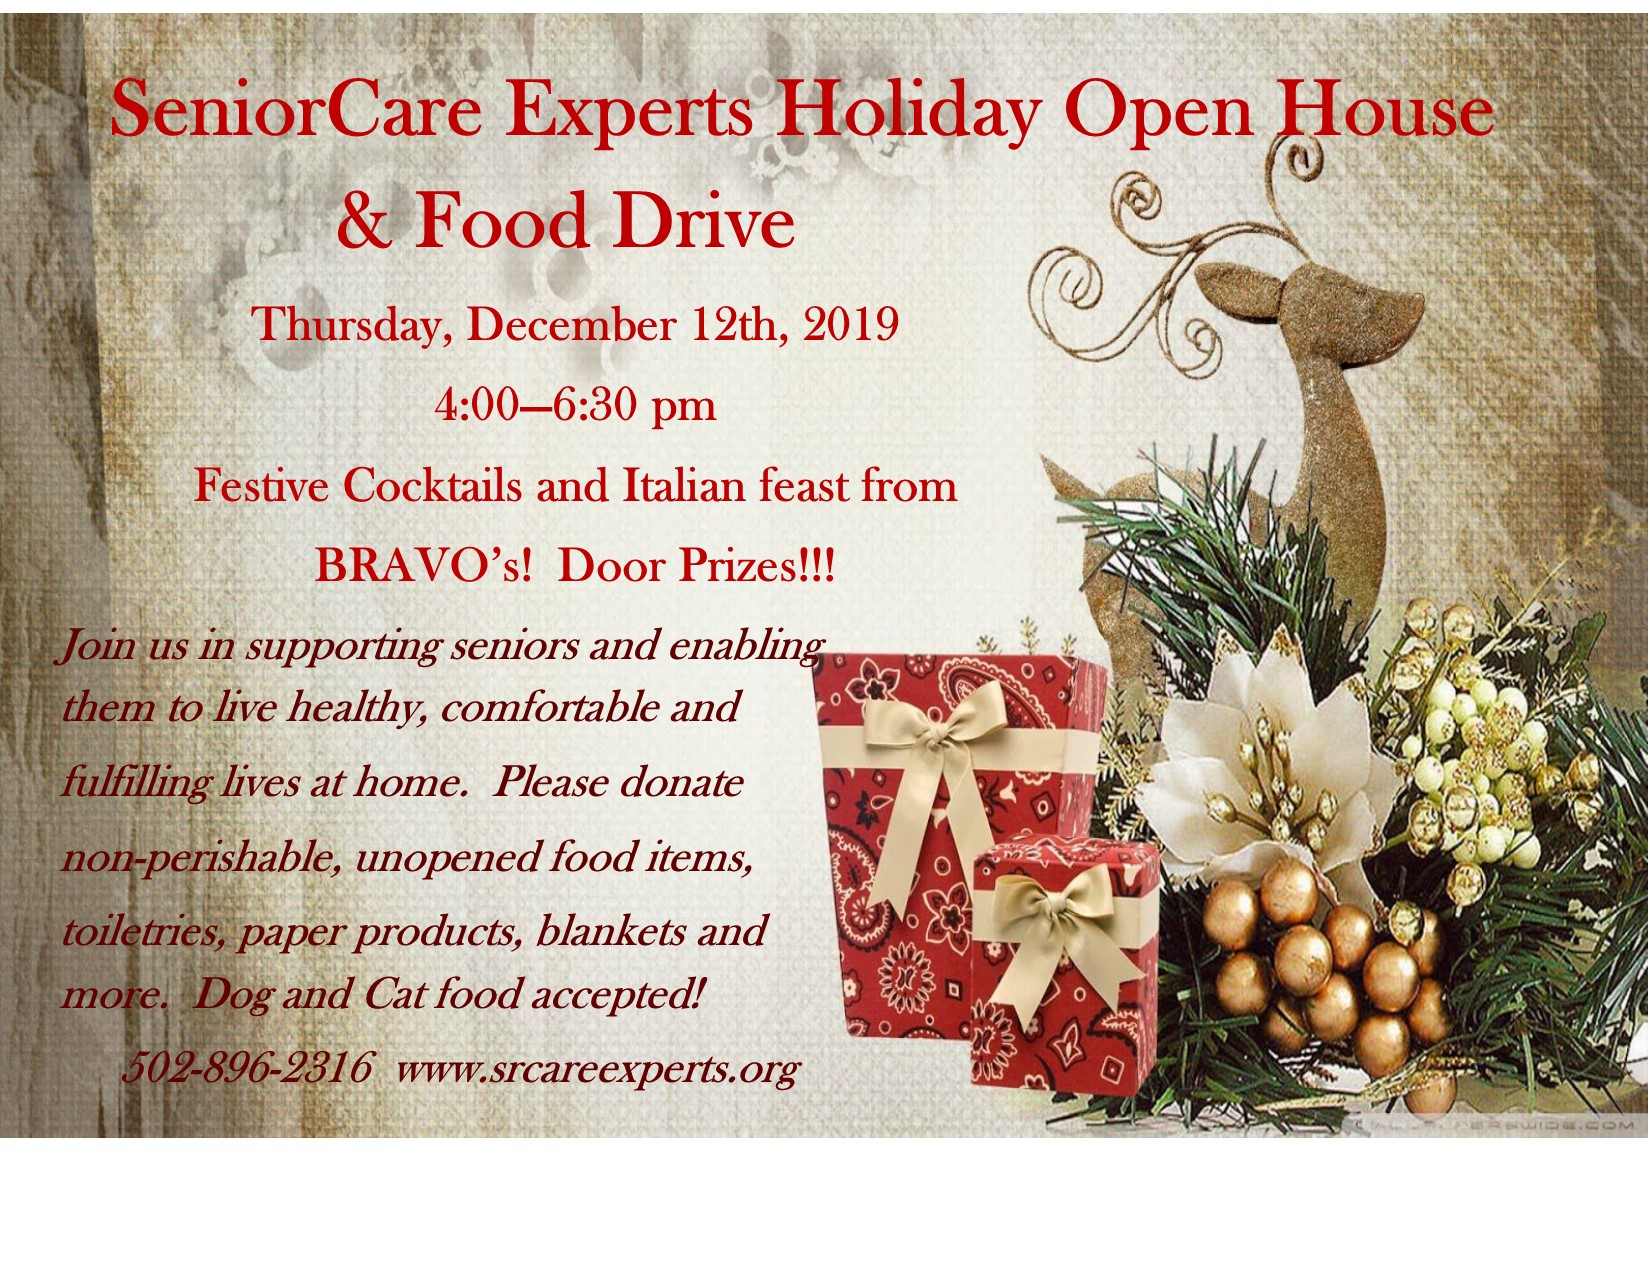 SeniorCare Experts Holiday Open House Flyer